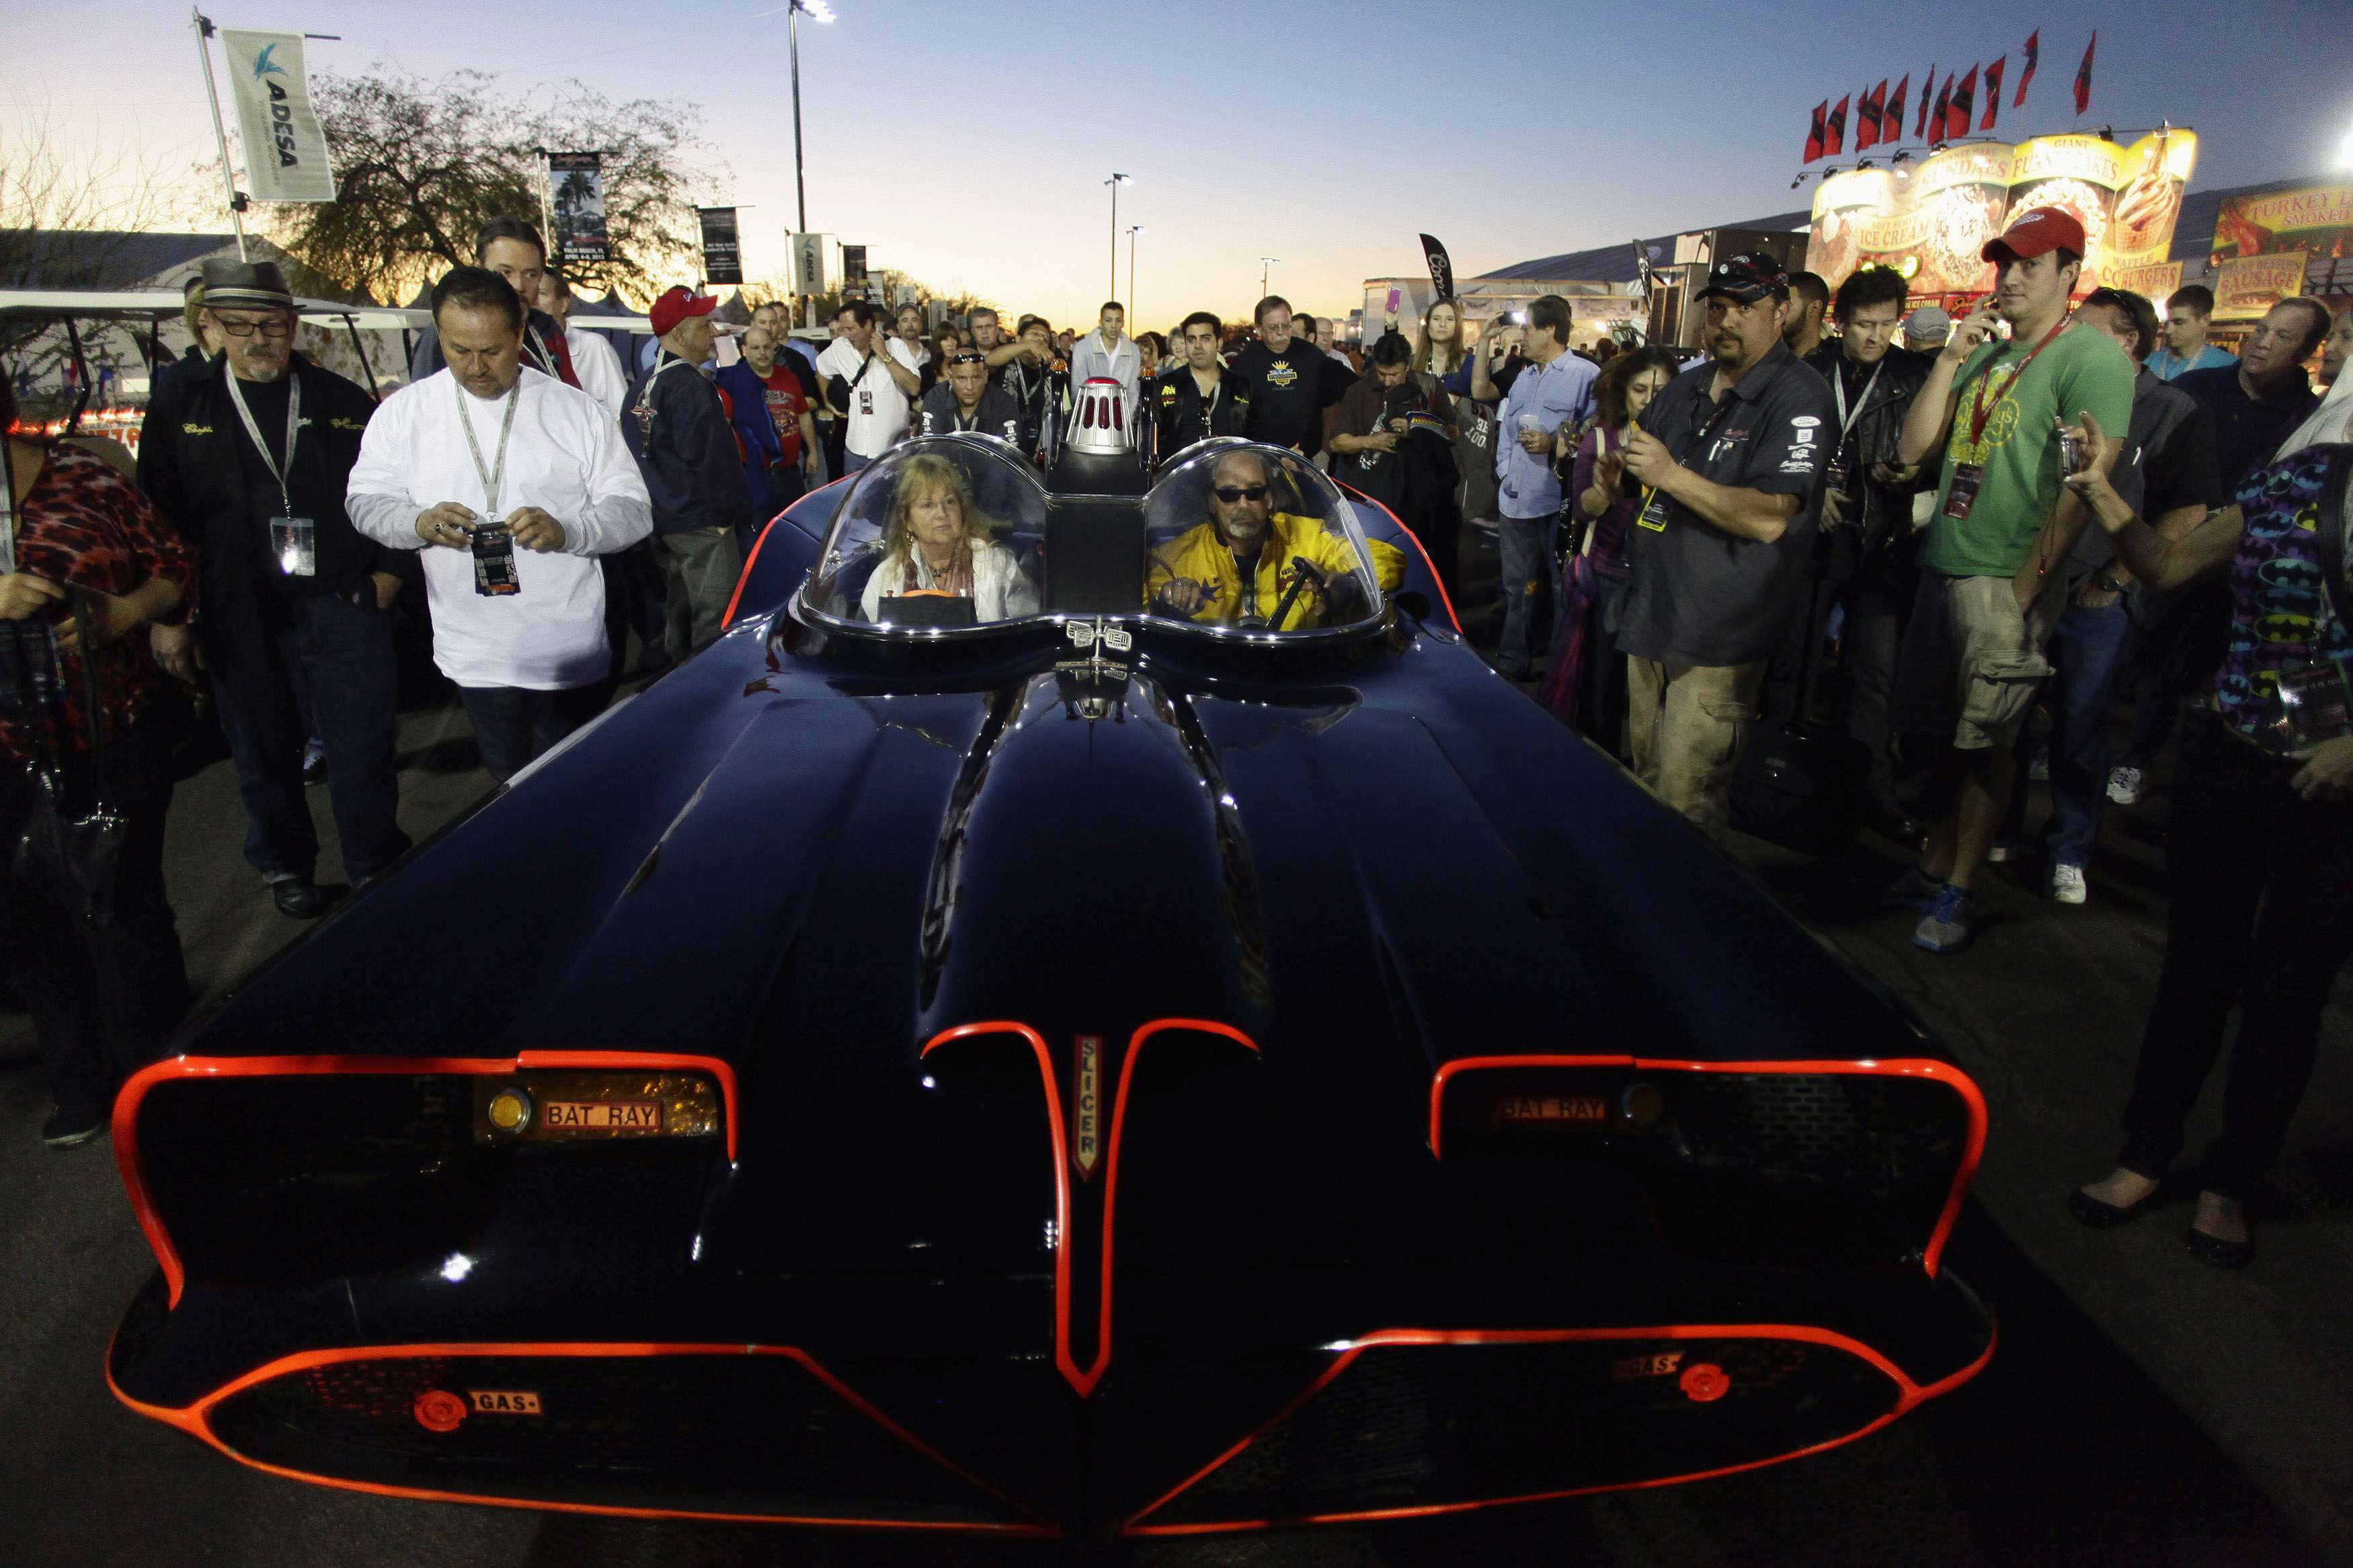 People surround the original Batmobile during the Barrett-Jackson collectors car auction in Scottsdale, Arizona January 19, 2013. The vehicle was sold for $4,200,000, according to the auction company. REUTERS/Joshua Lott (UNITED STATES - Tags: ENTERTAINMENT SOCIETY BUSINESS TRANSPORT)